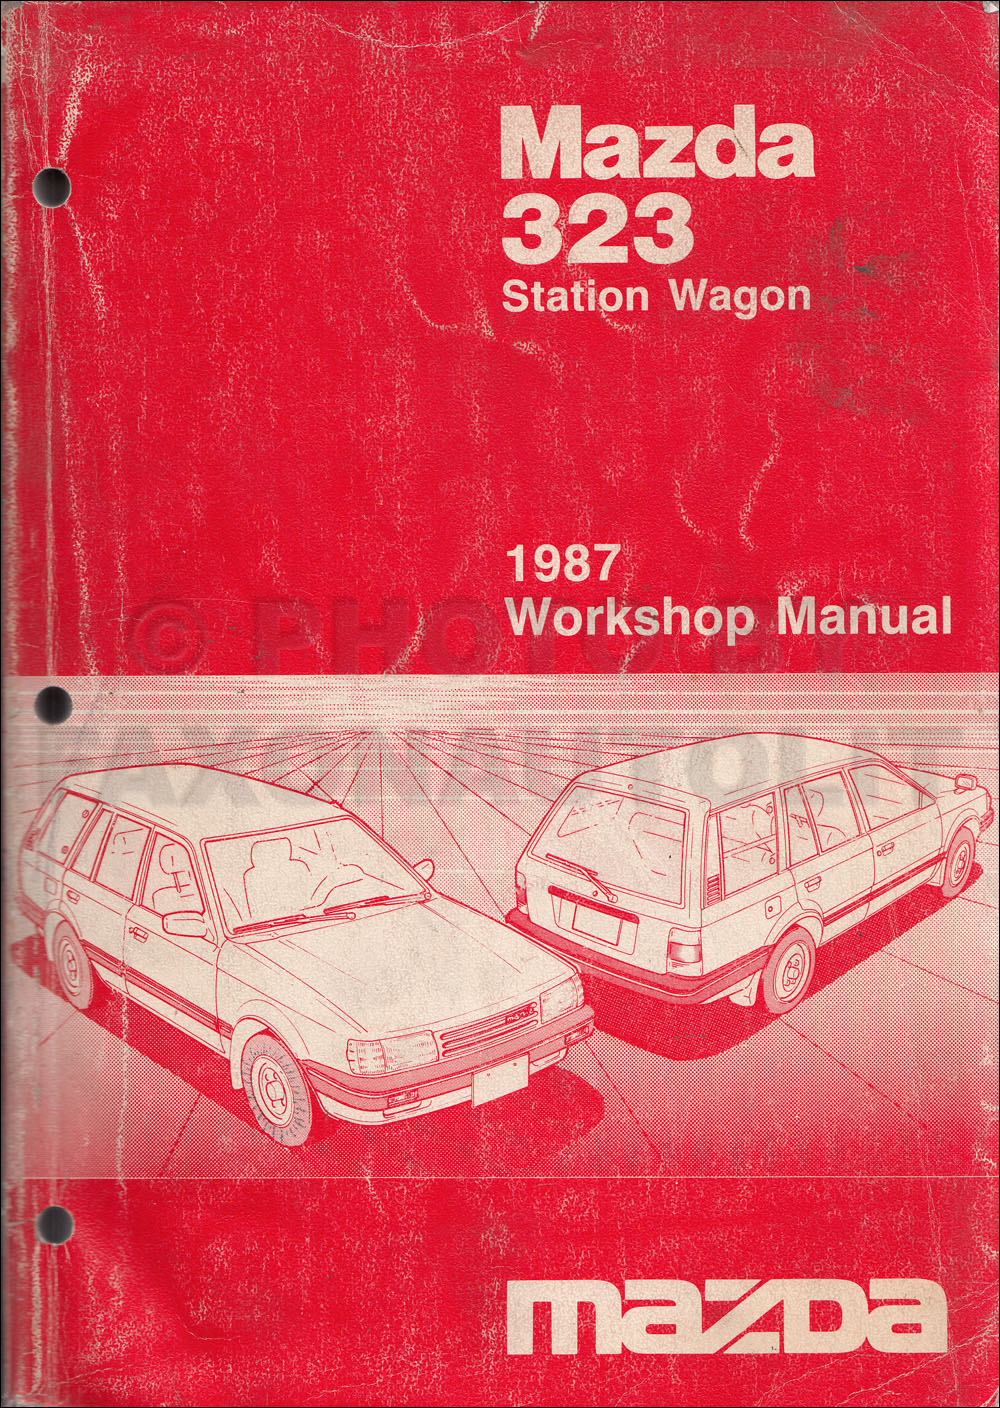 1987 Mazda 323 Station Wagon Repair Manual Original